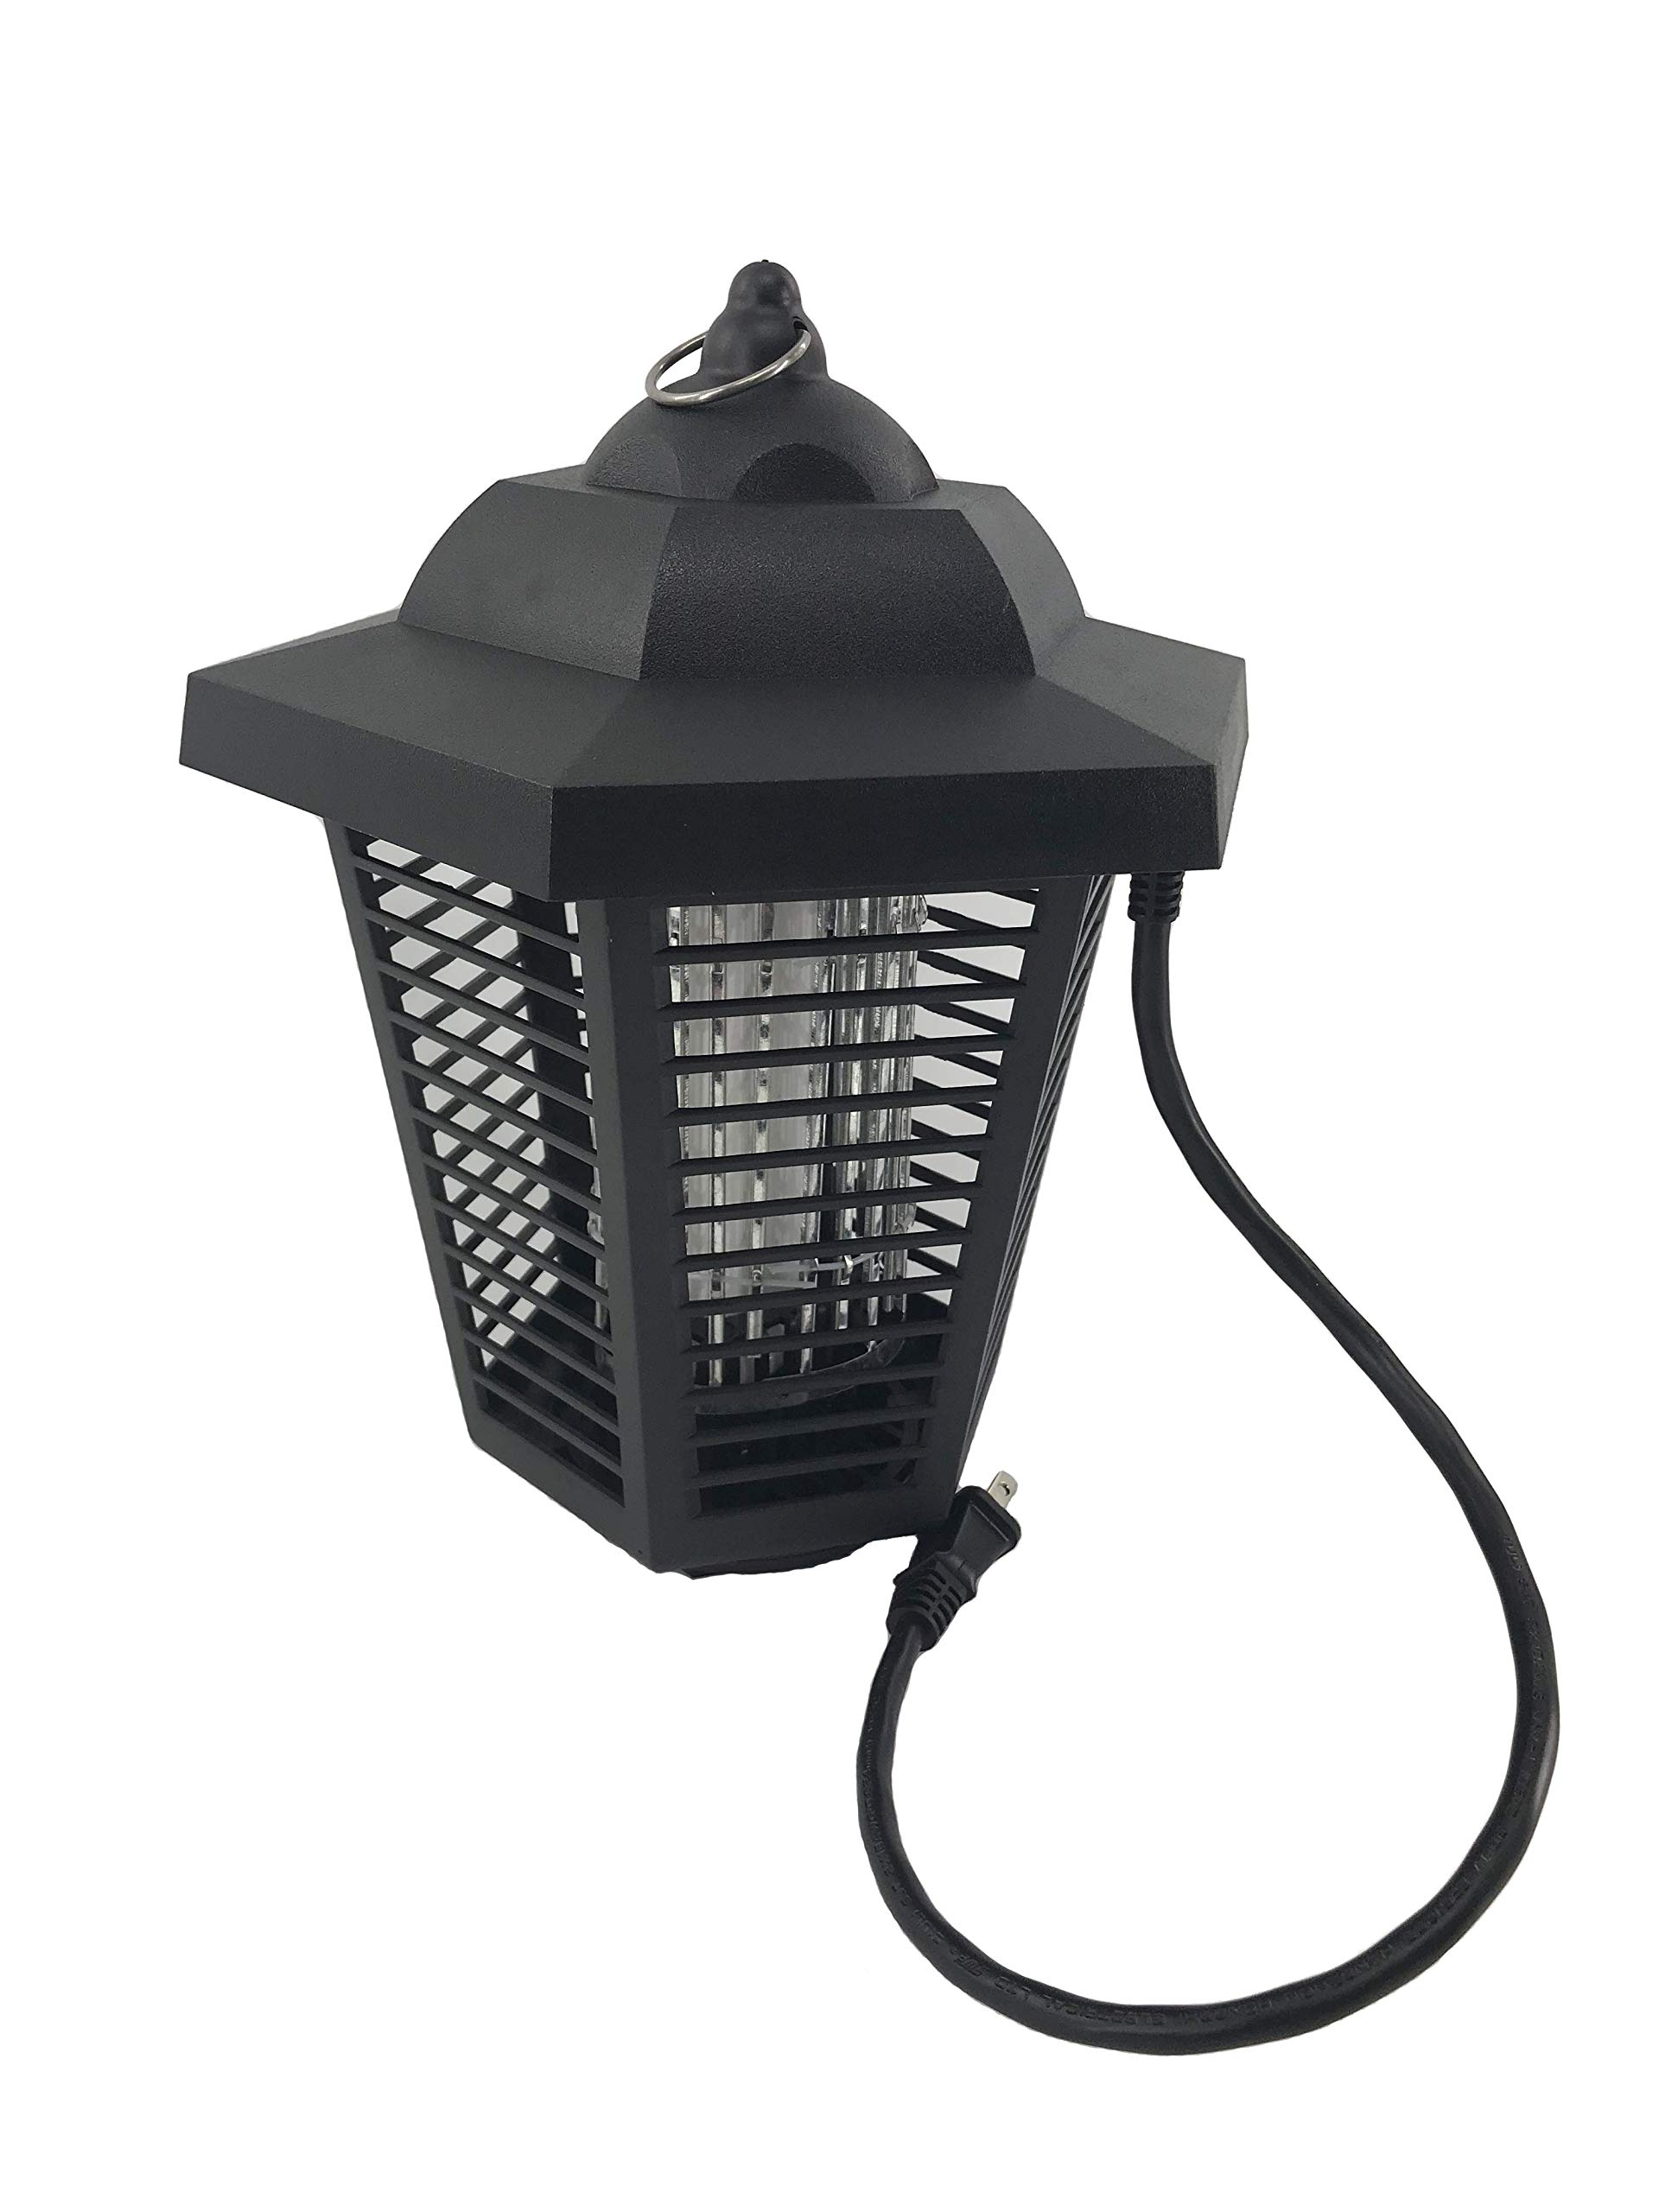 TruePower Electronic Insect Killer, 1/2 Acre Coverage